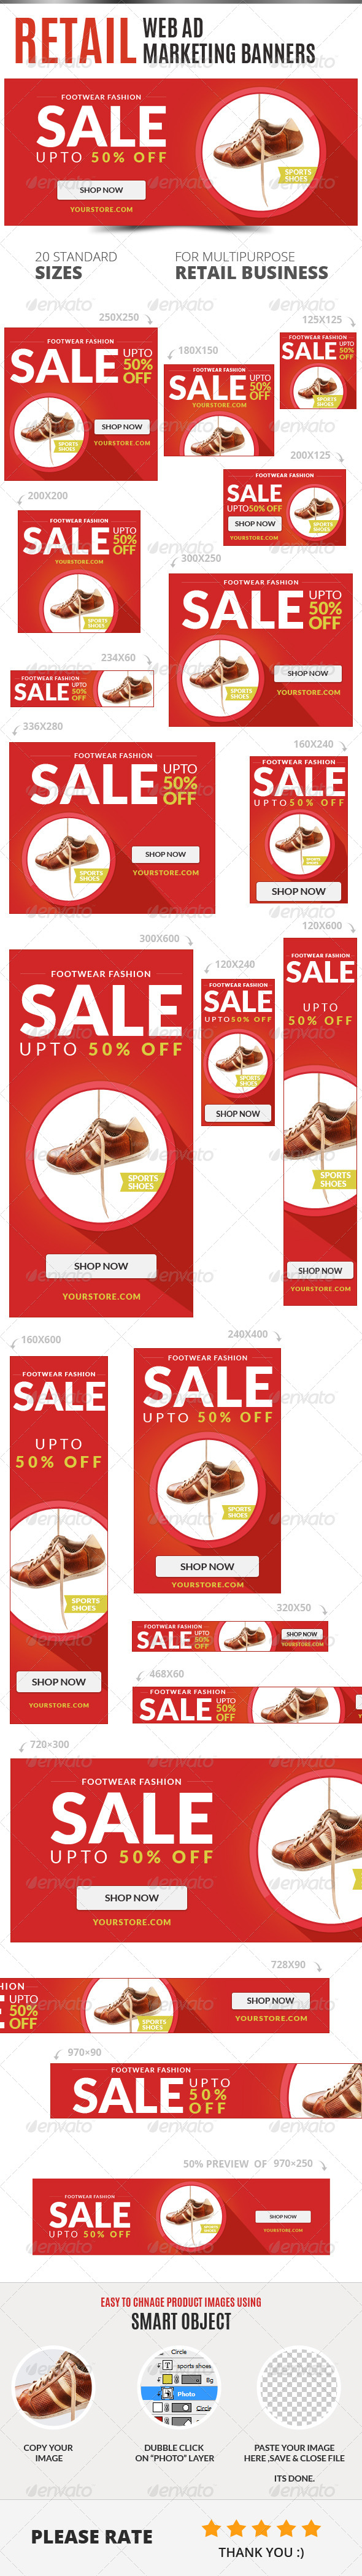 GraphicRiver Retail Web Ad Marketing Banners 6877798